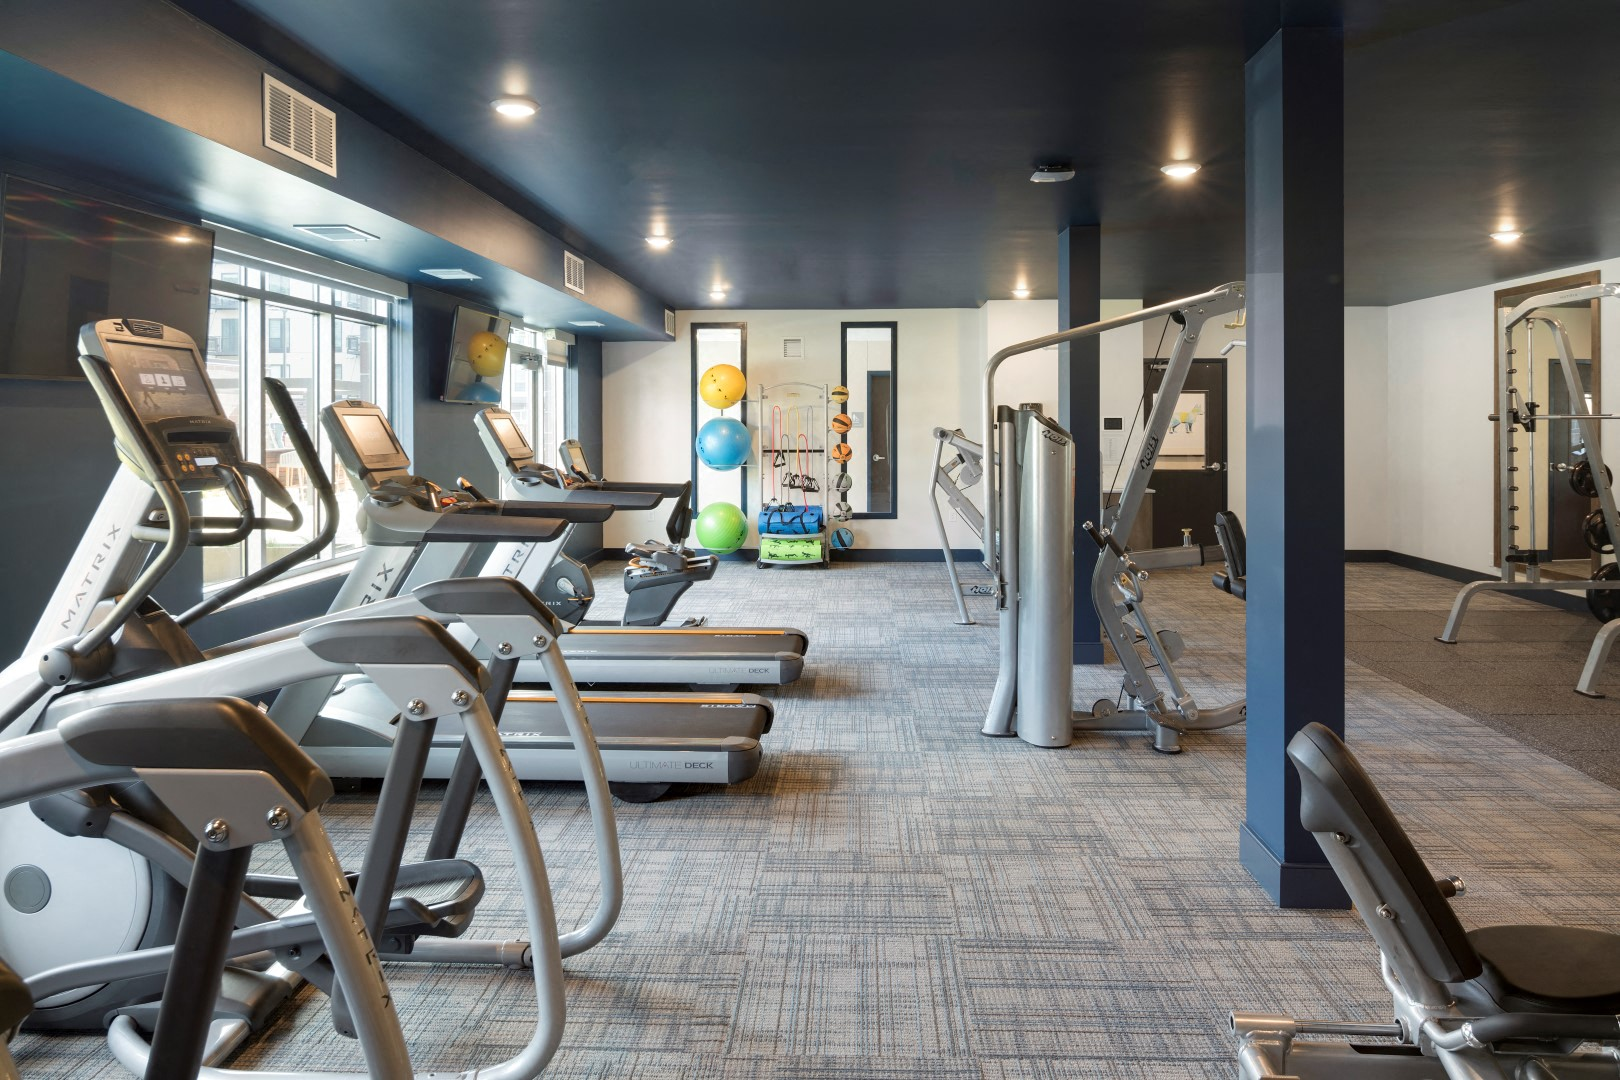 The McMillan Shoreview Fitness Center